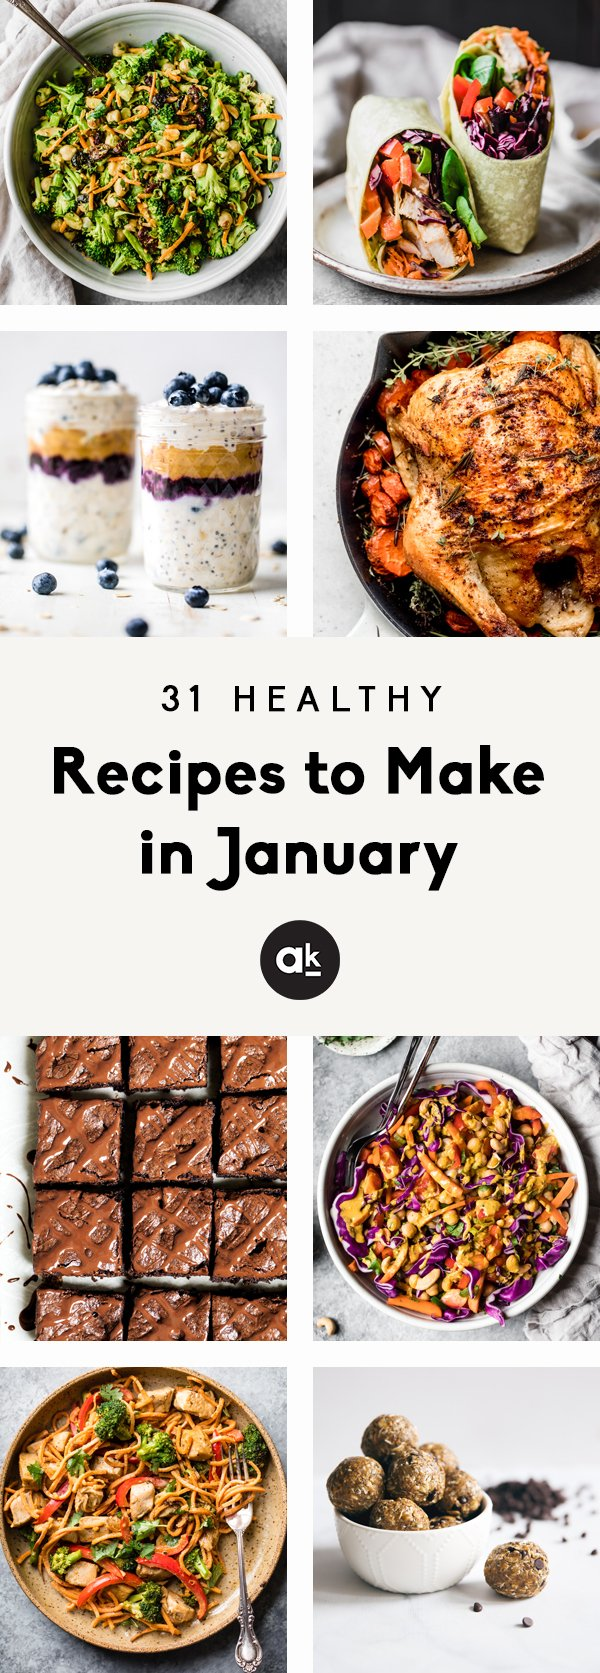 31 delicious, healthy recipes to make in January! From make-ahead breakfast and lunches to lightened-up desserts, these incredible recipes are the perfect way to meal prep using seasonal ingredients.